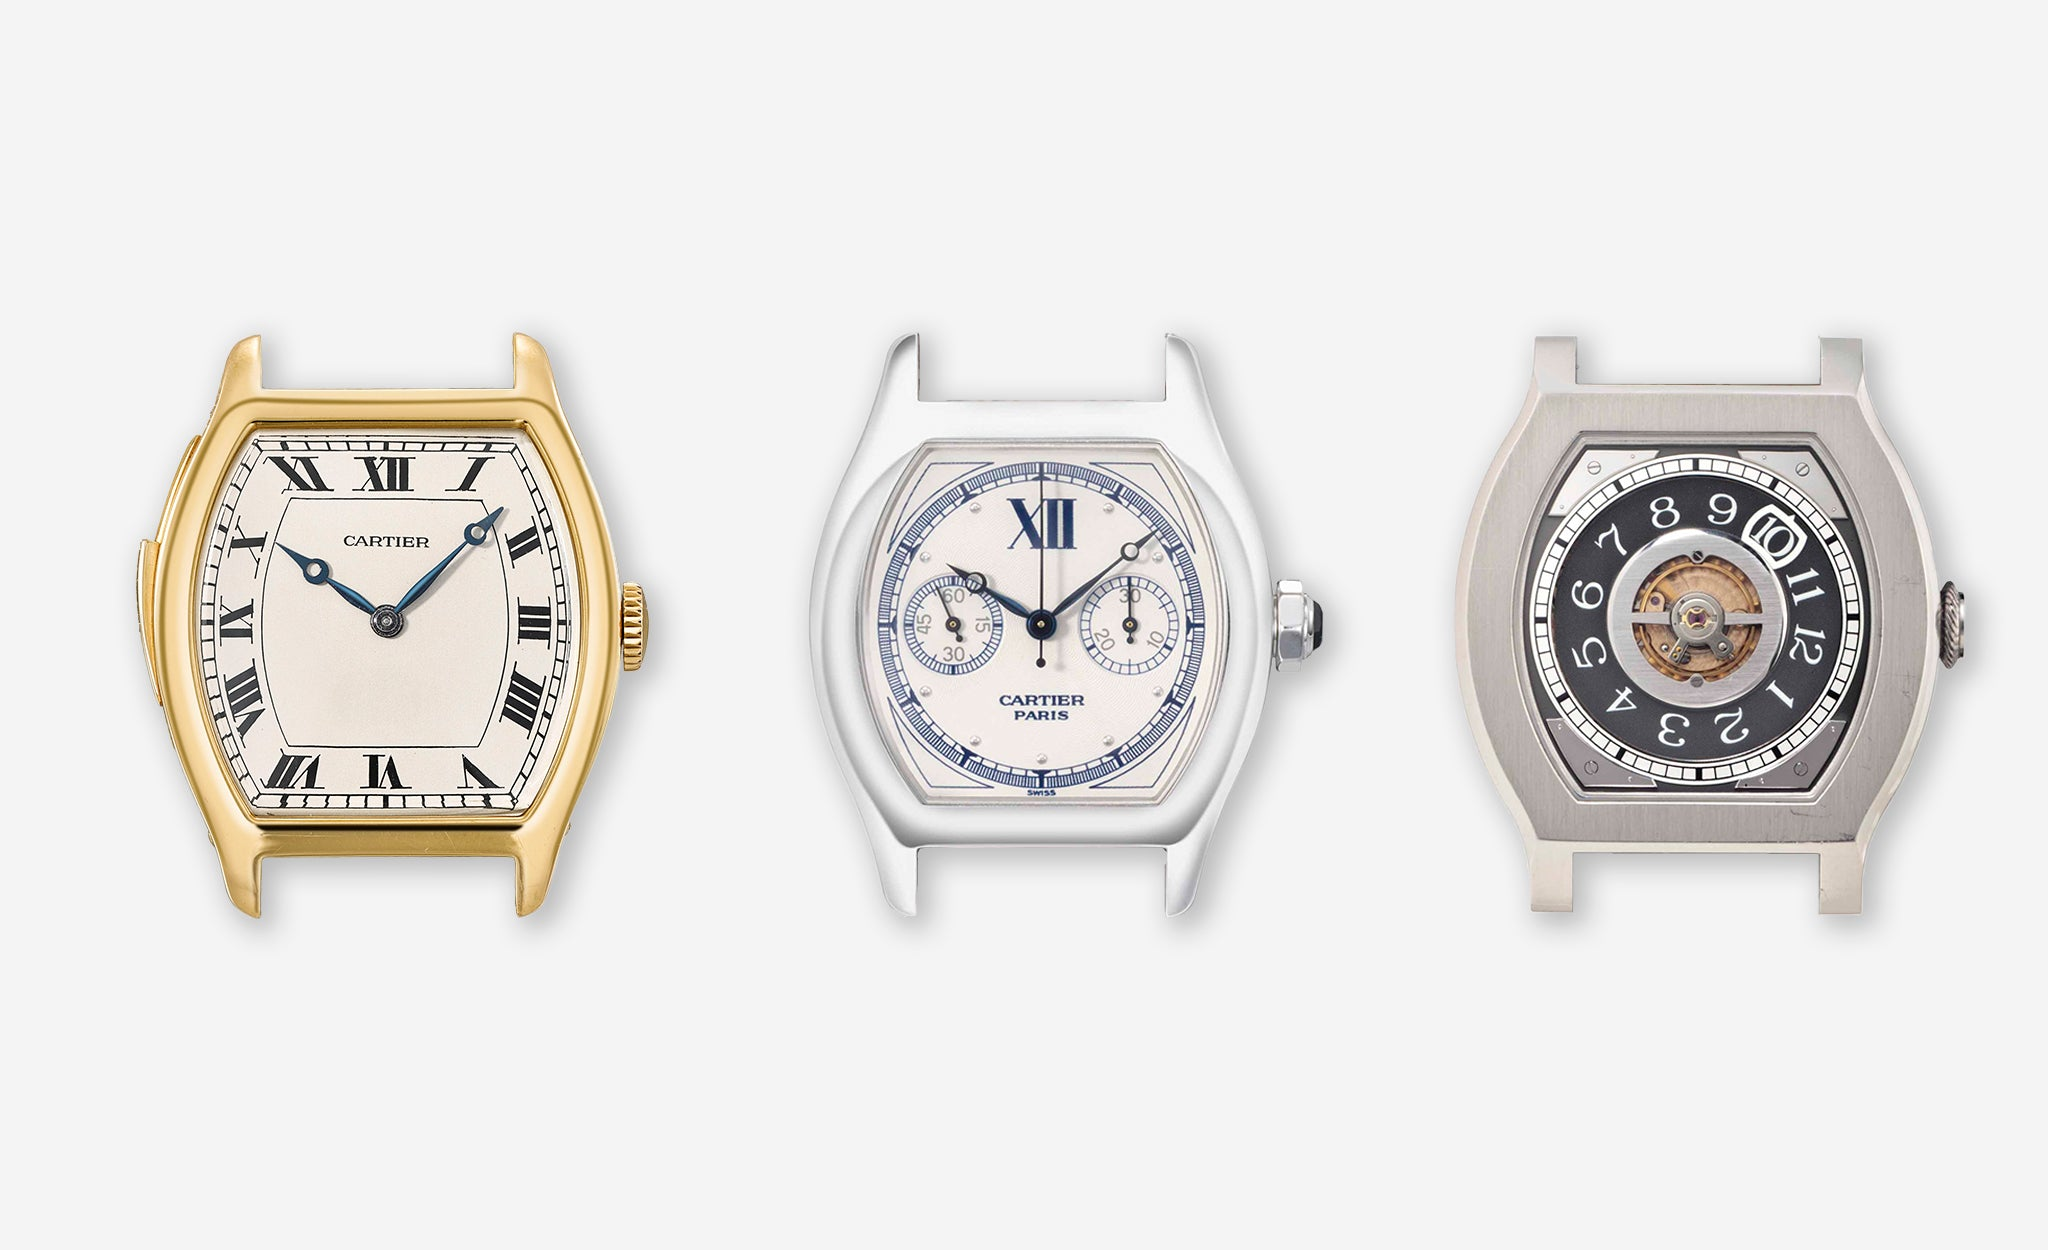 Three tortue shaped watches, two from Cartier and one F.P. Journe